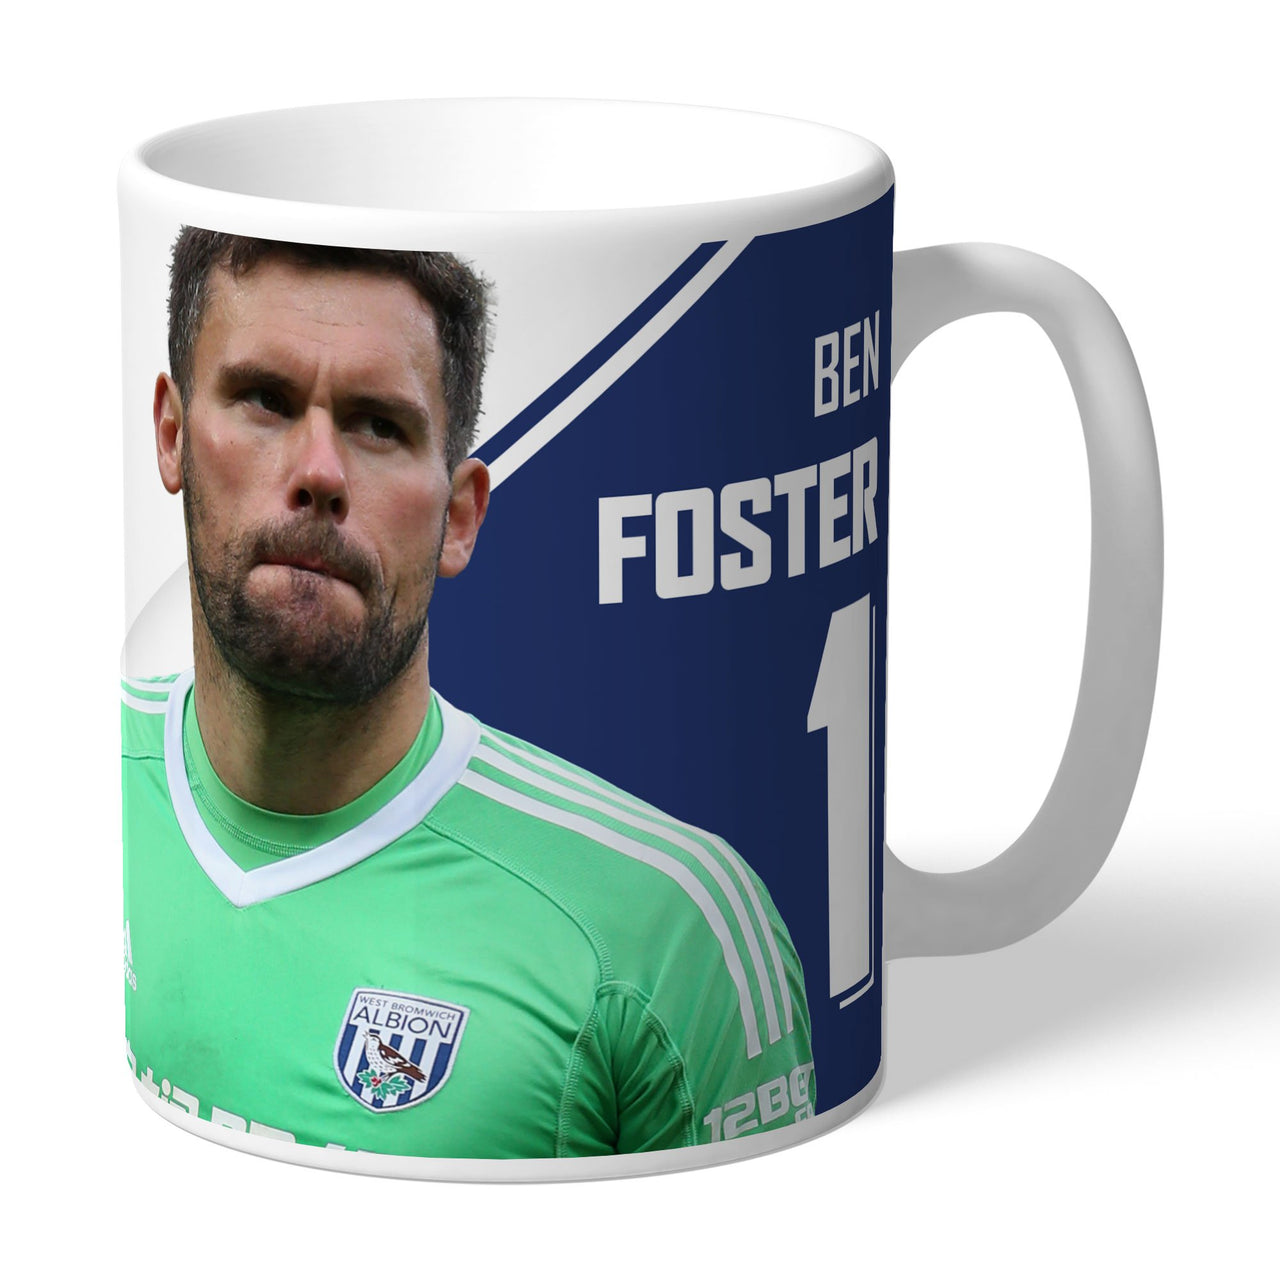 West Bromwich Albion FC Foster Autograph Mugs, Gifts